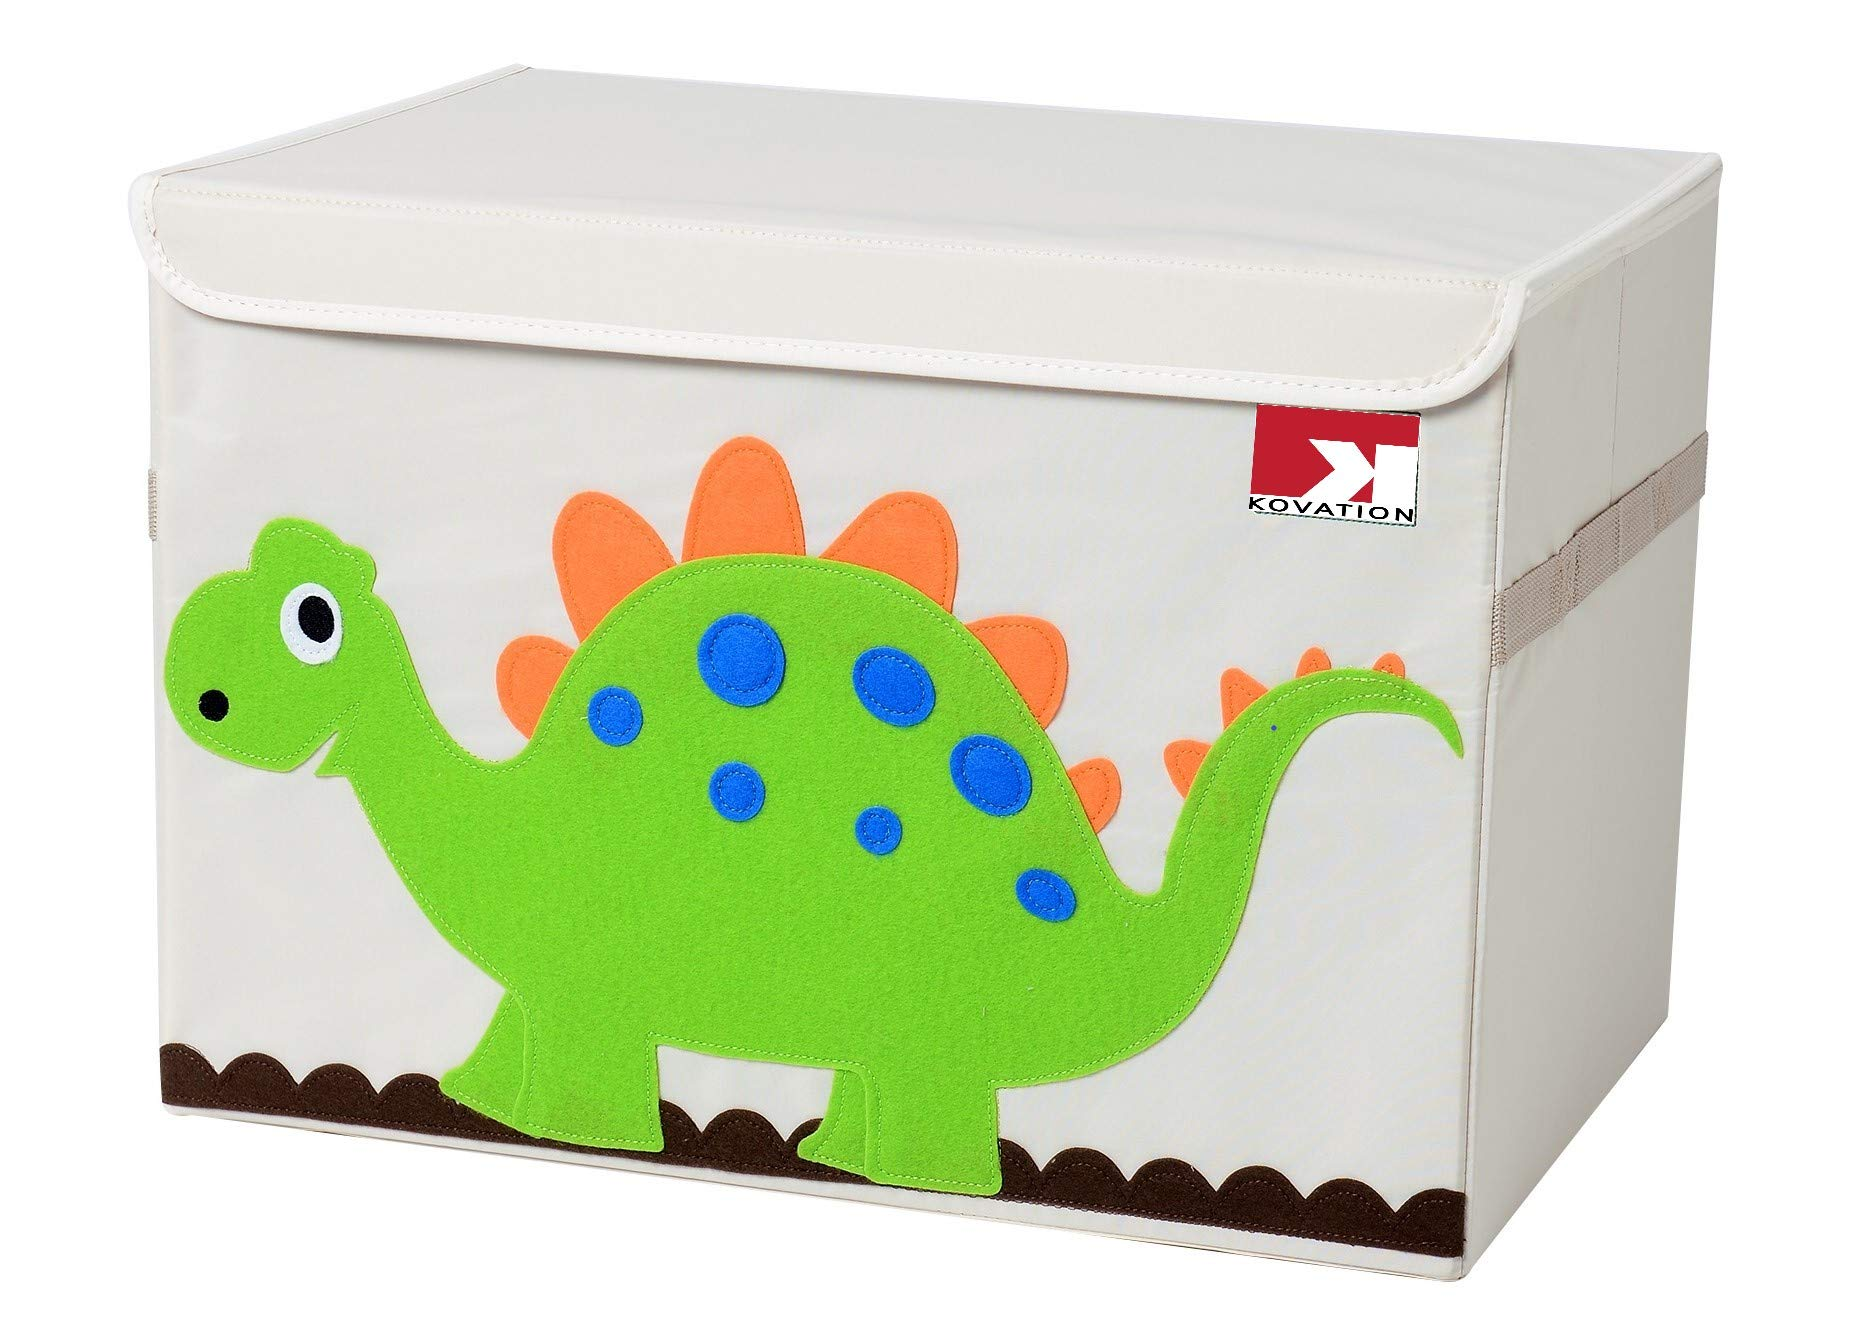 KOVATION Toy Chest Organizer Storage Bin with Lid, Collapsible Box and Trunk for Storing Kids Children Baby Toys, Clothes, Shoes, Books and More (Dinosaur)